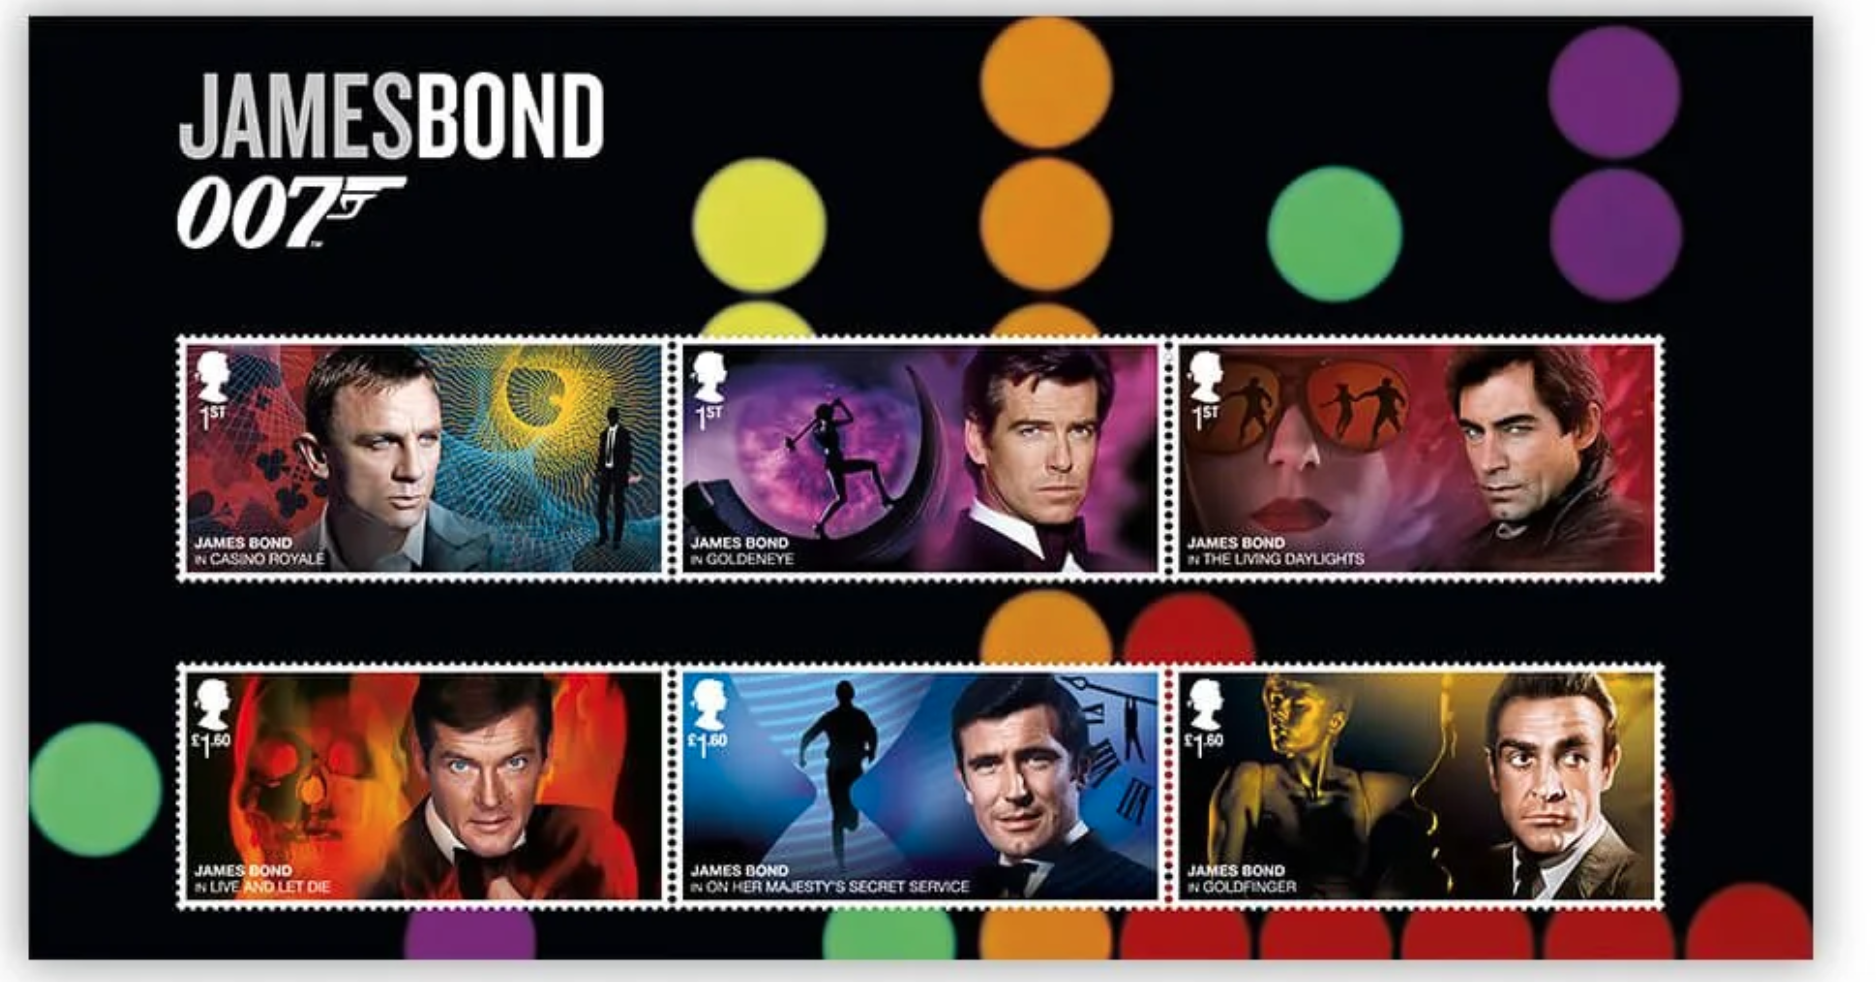 Above: The new 007 James Bond stamps that went on sale on March 17.